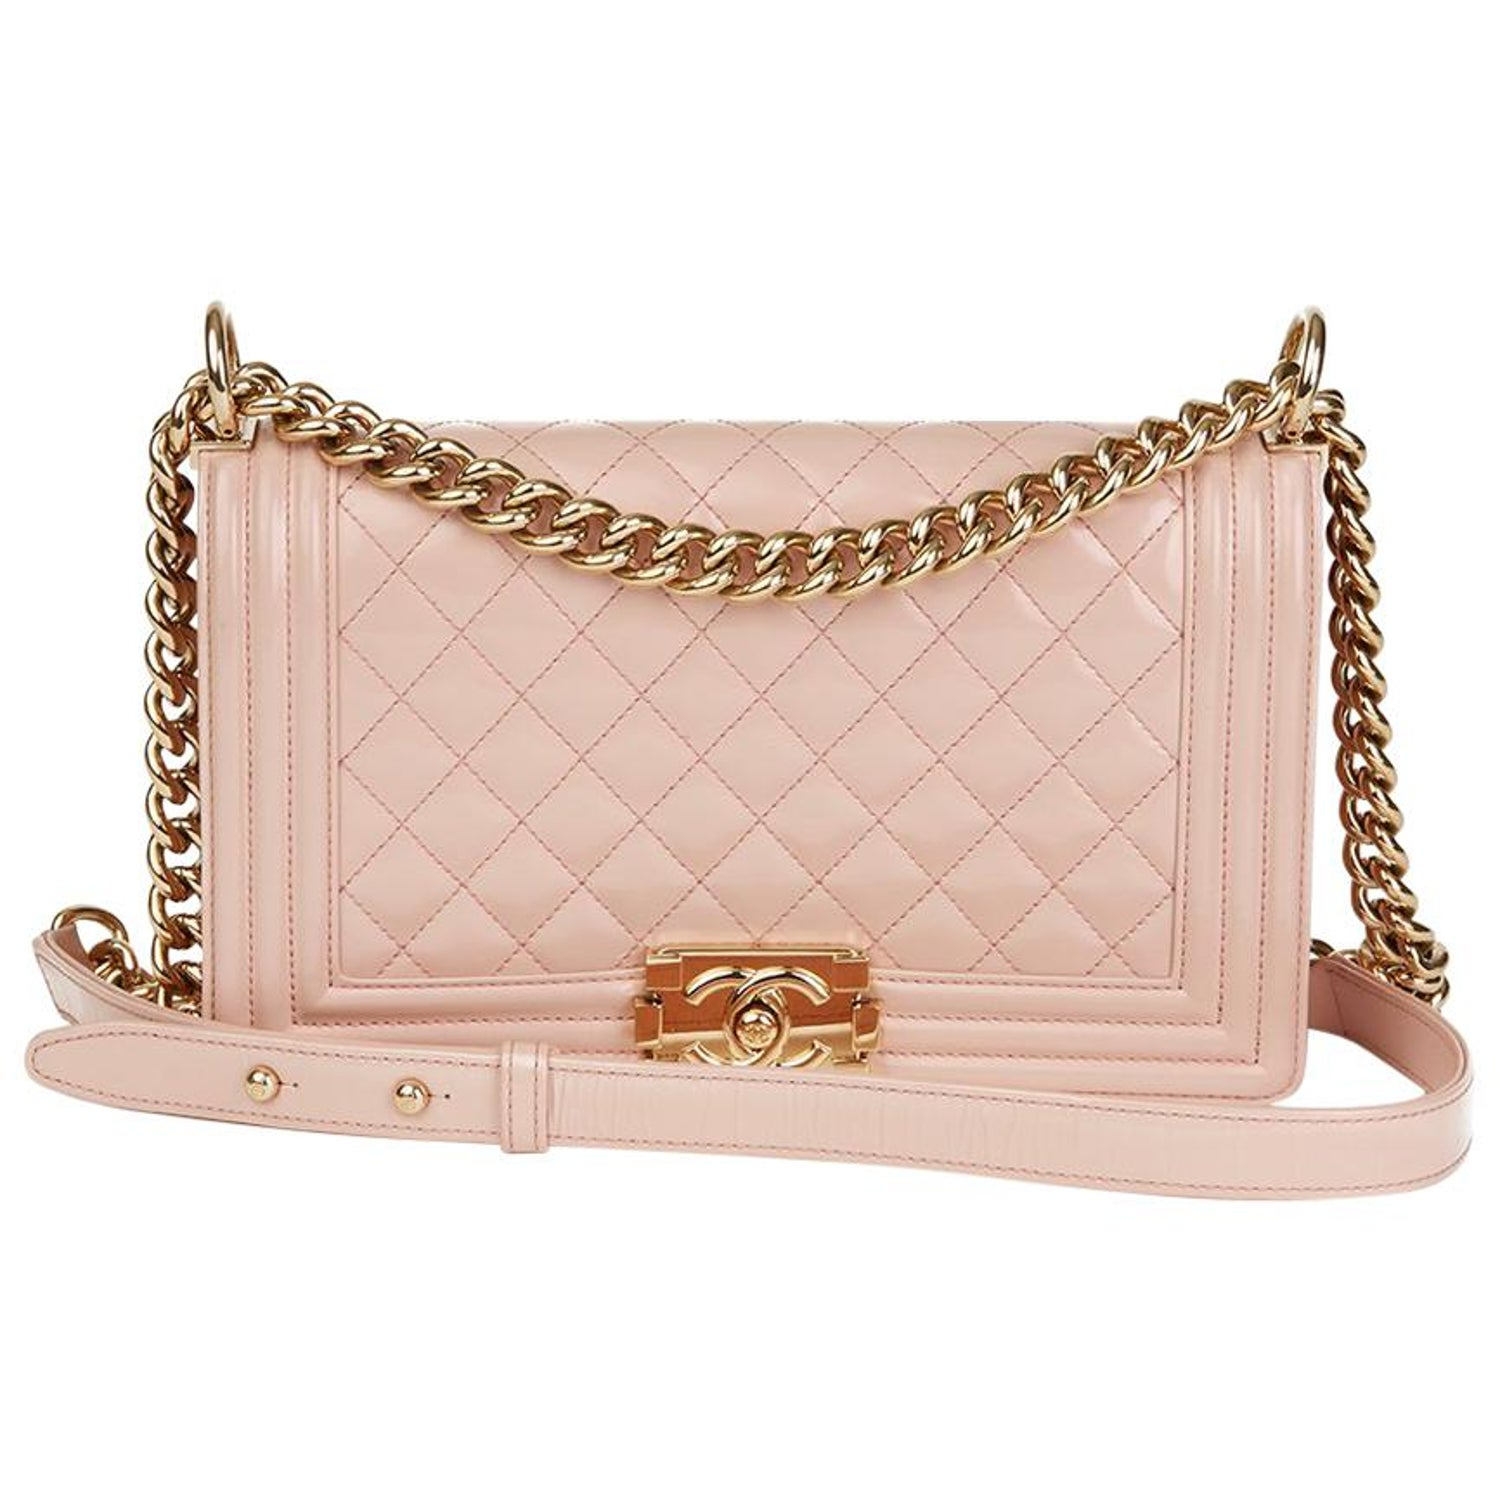 7f4407805c5 2017 Chanel Light Pink Quilted Iridescent Calfskin Leather Medium Le Boy at  1stdibs